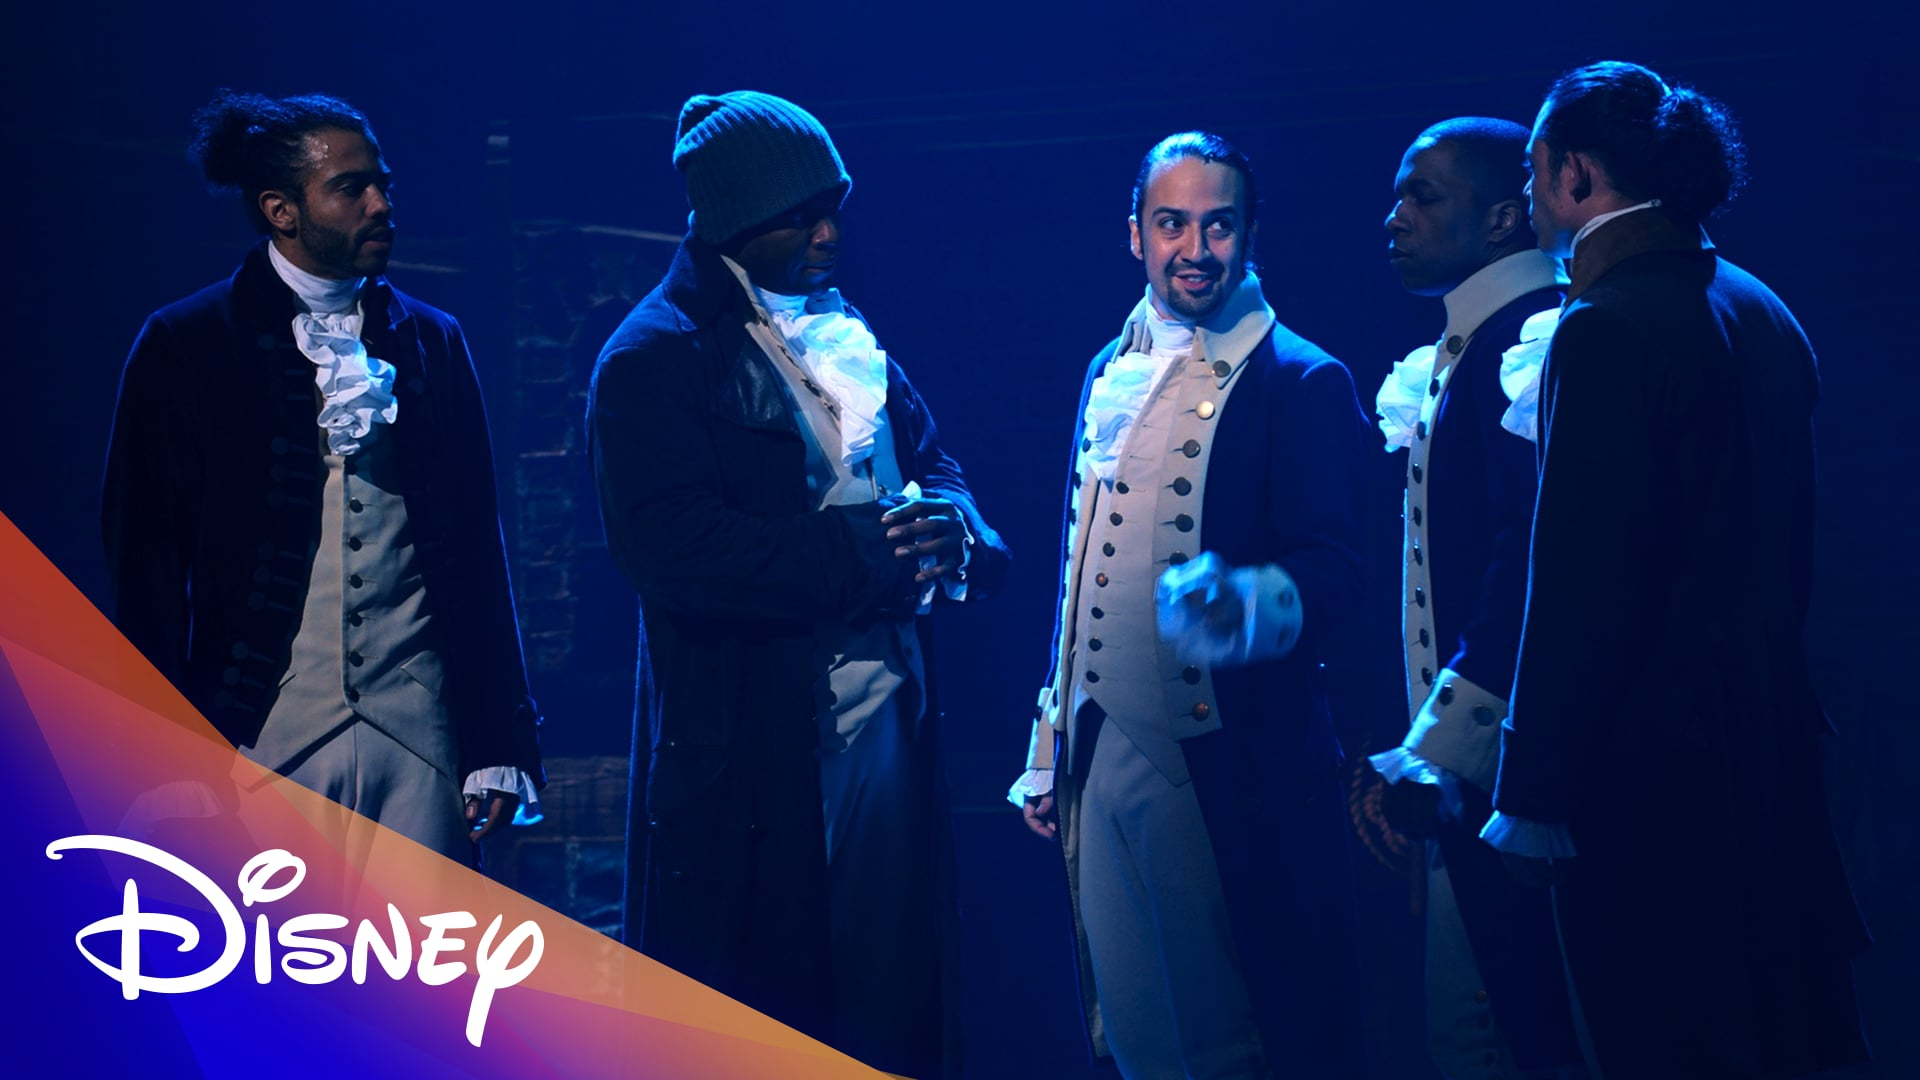 The Cast of Hamilton Shares Their Disney Music Memories | Disney